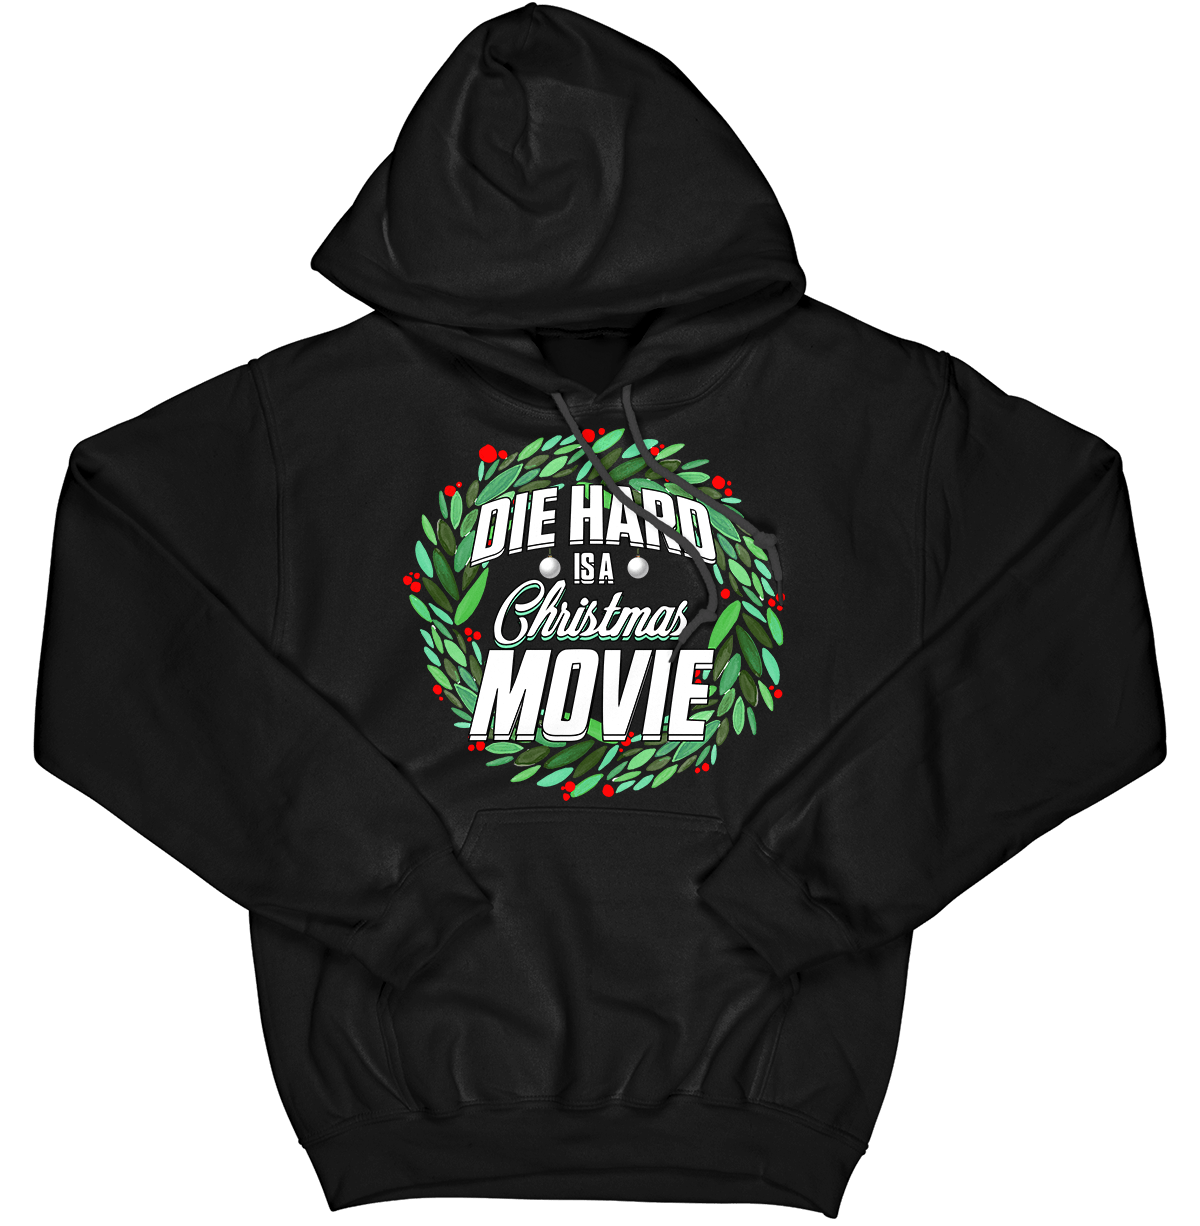 Die Hard Is a Christmas Movie Hoodie